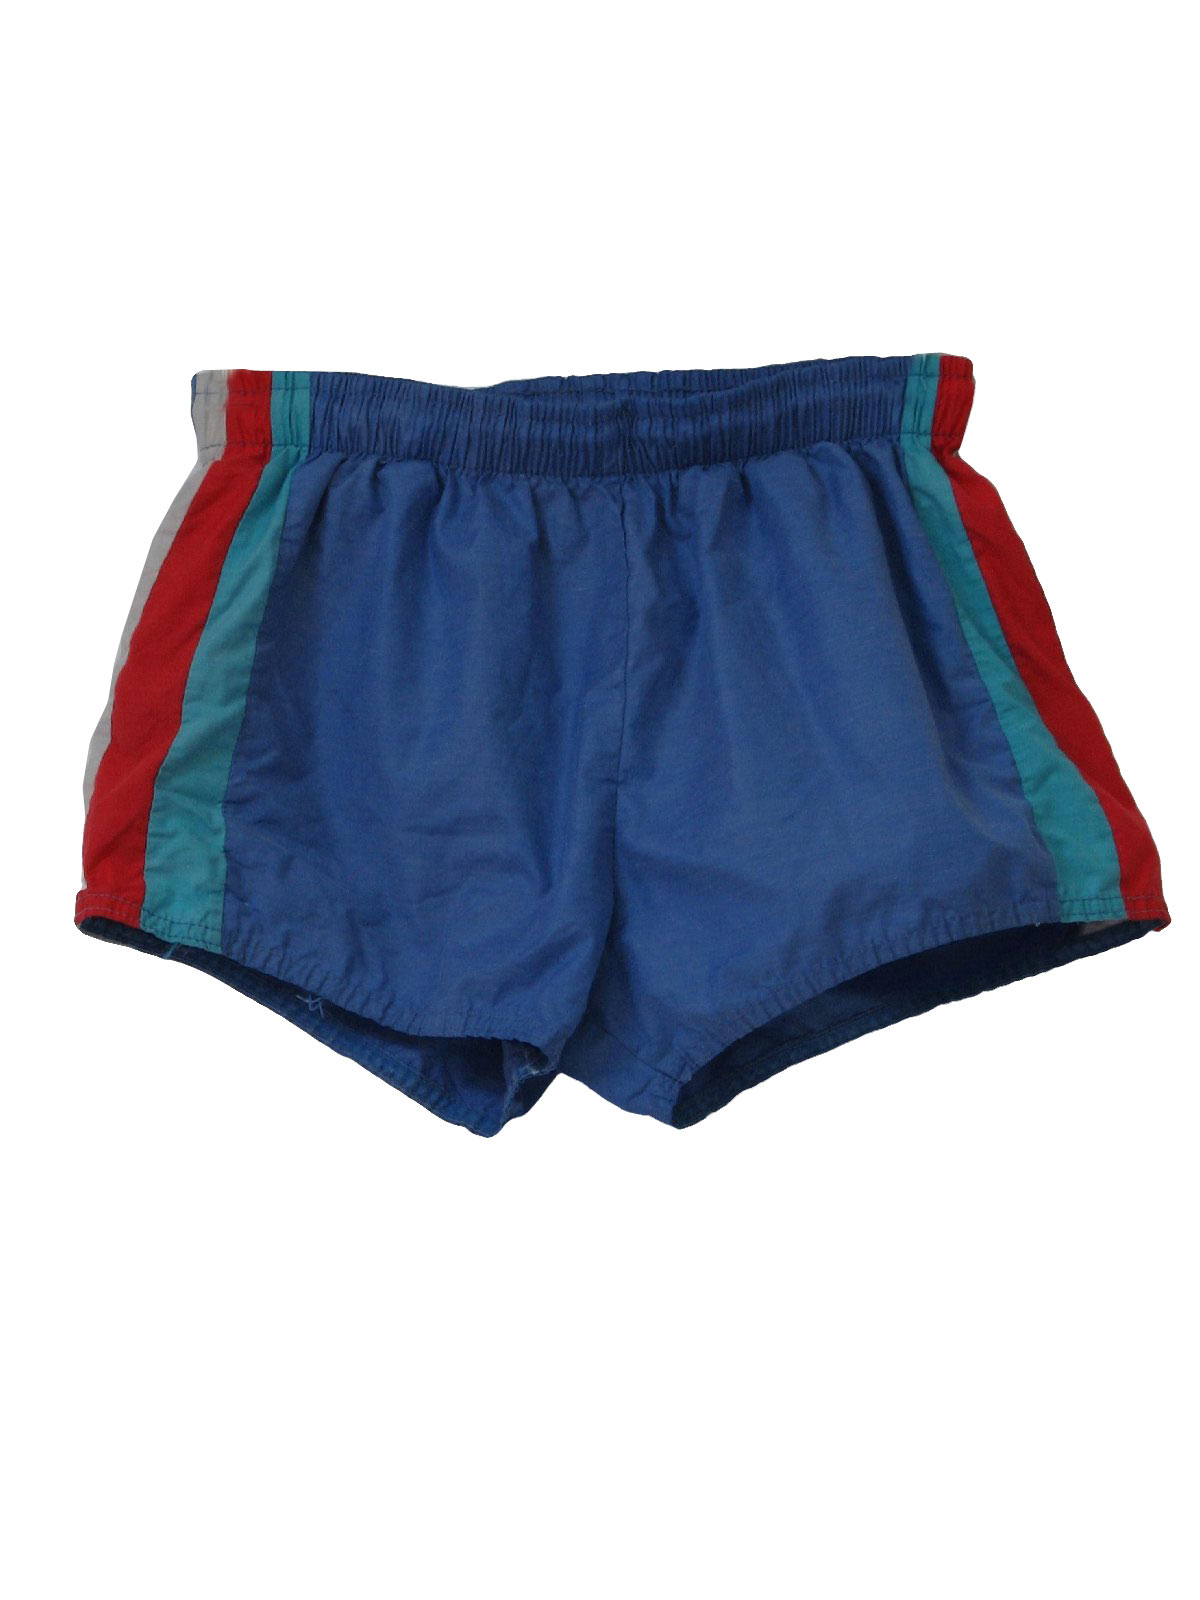 Retro 1980s Shorts 80s Care Label Mens Blue Teal Green